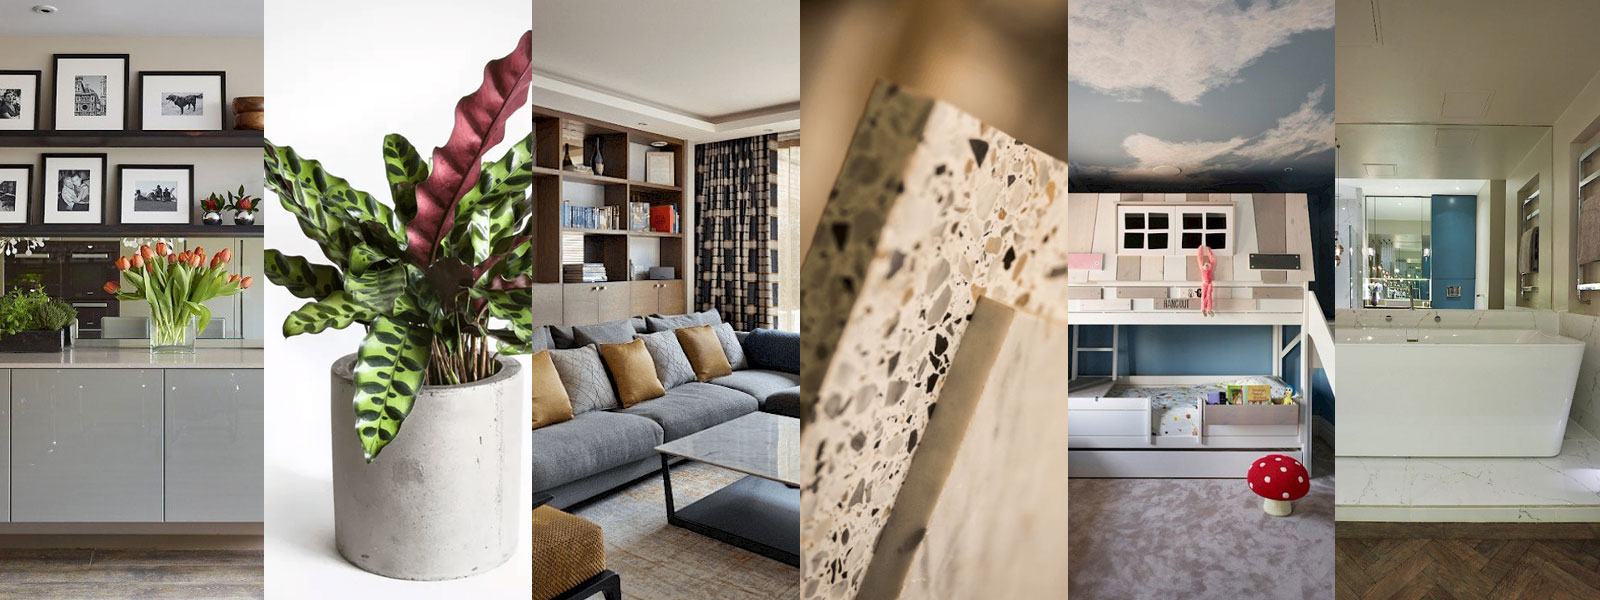 read the latest from our interior design blog interior design offer Top Interior Design Trends for 2018